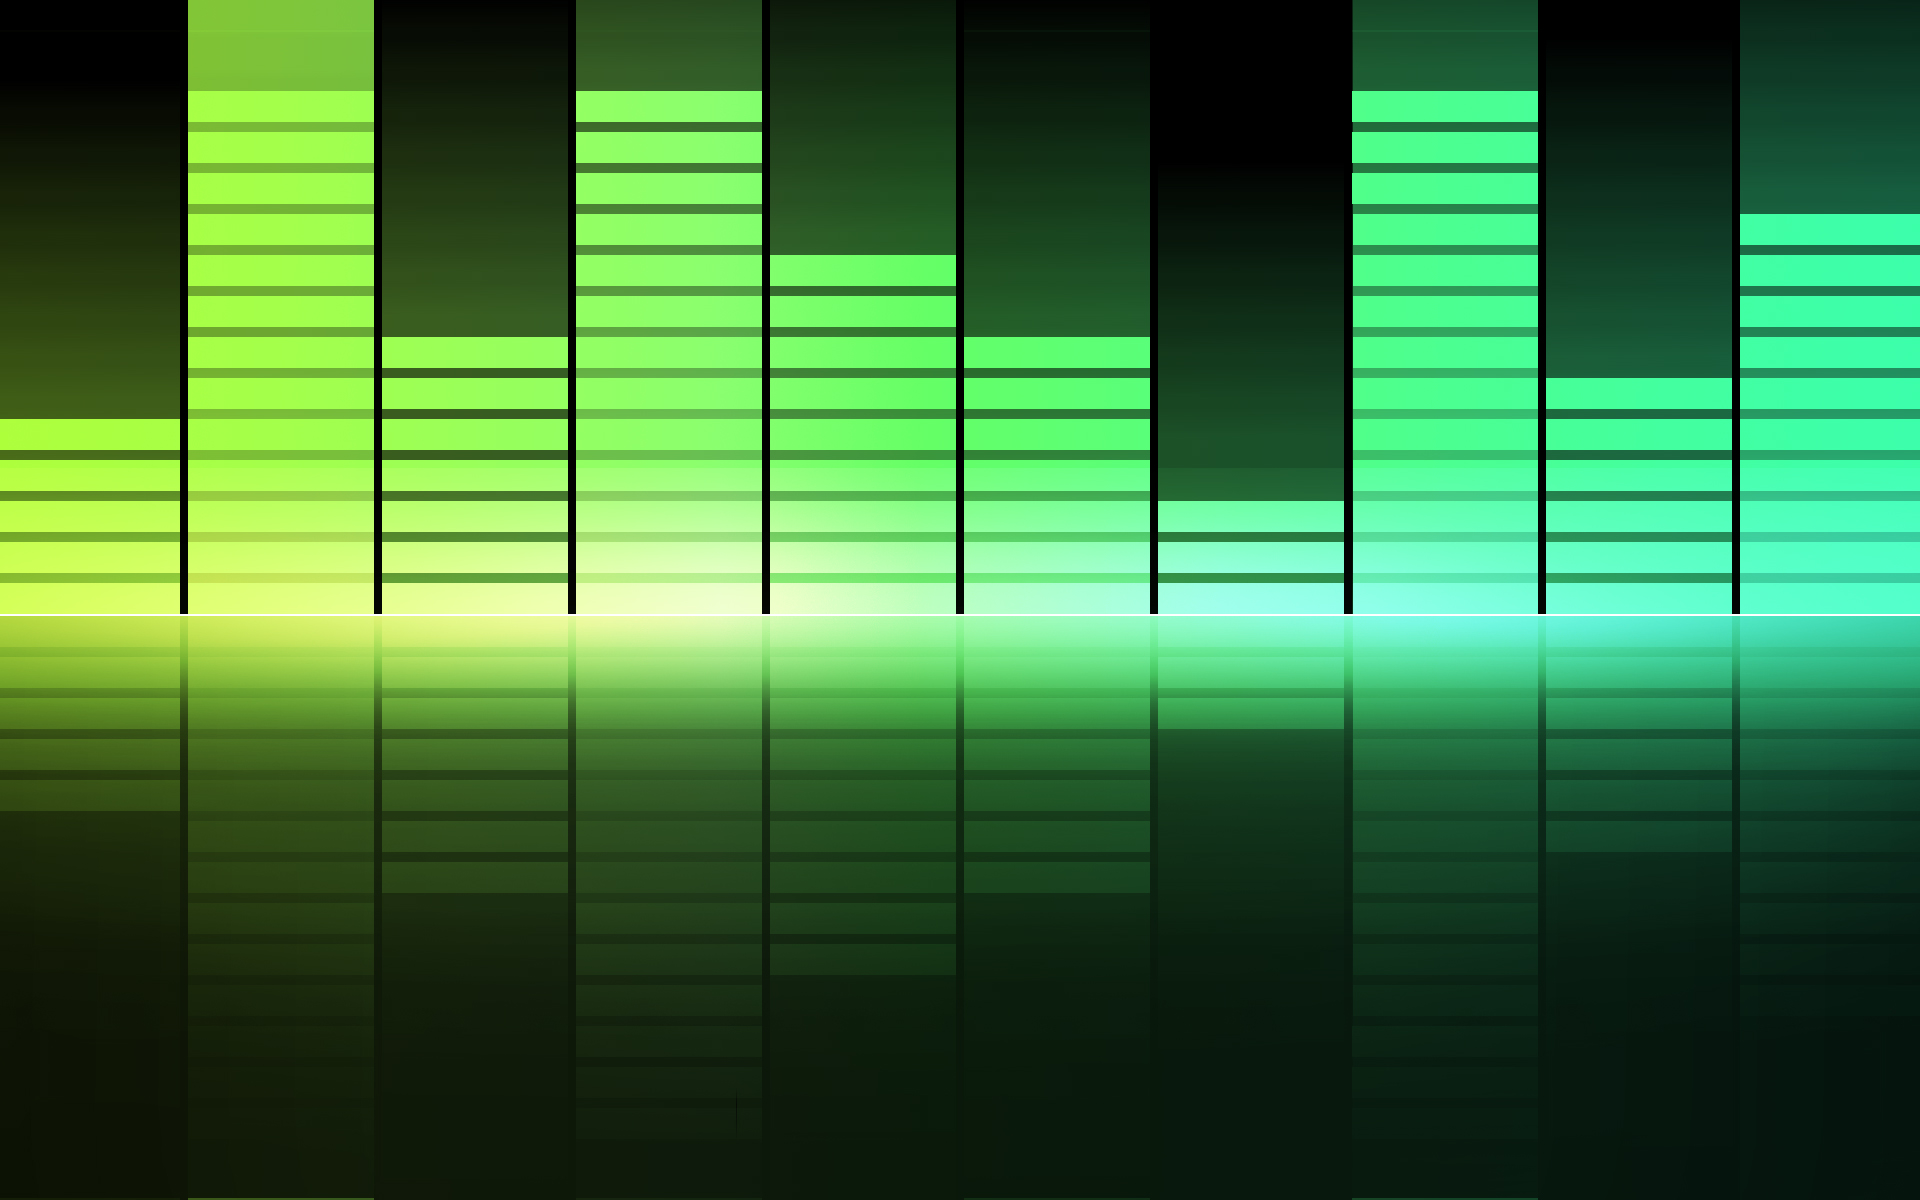 Equalizer wallpaperEqualizer Bars Wallpaper Hd